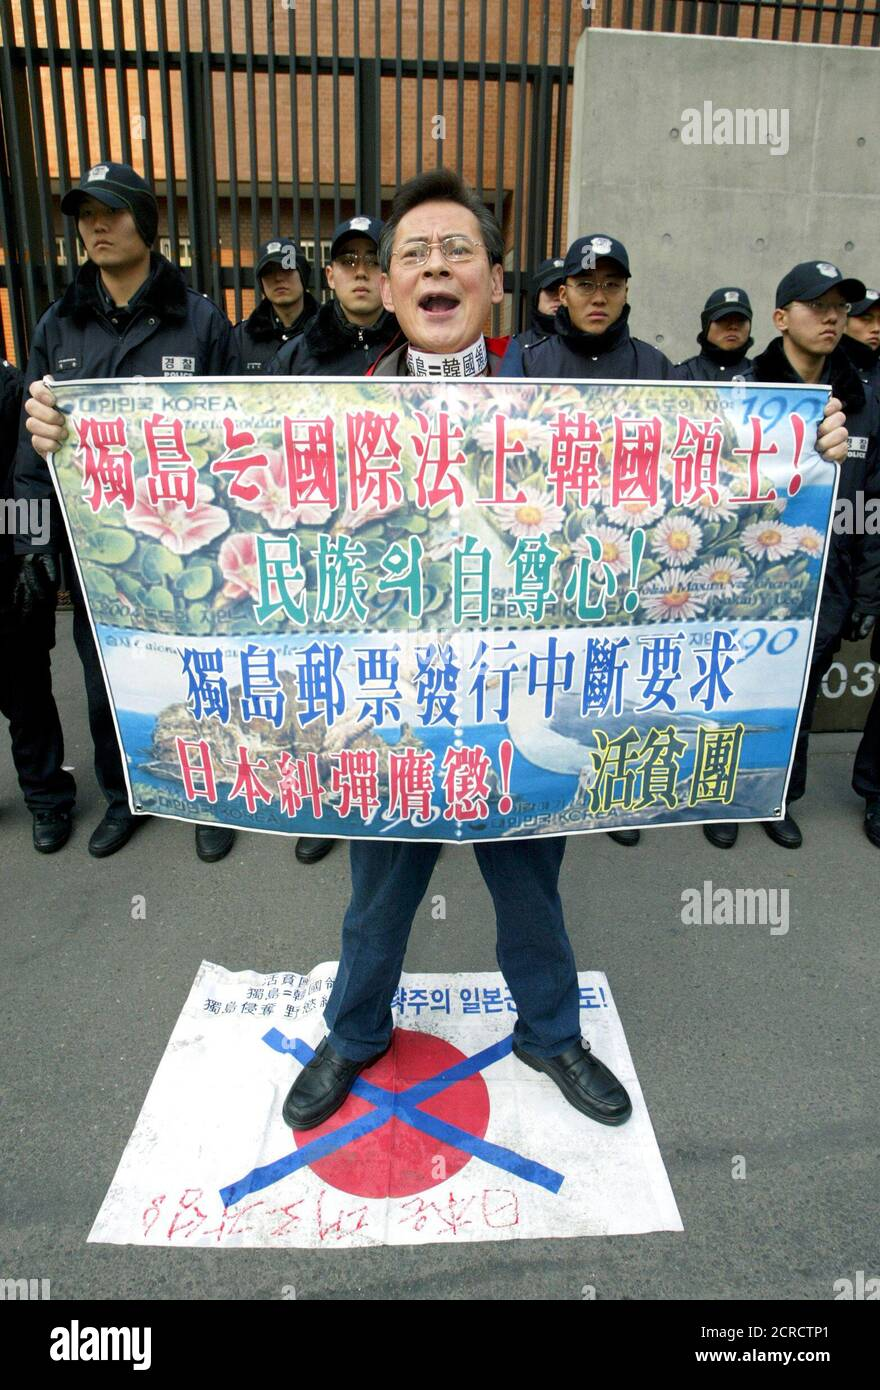 Holding a sign depicting a new Korean postal stamp of a disputed island claimed by South Korea and Japan, a South Korean protester shouts anti-Japan slogans in front of the Japanese embassy in Seoul January 9, 2004. South Korea's postal service announced on Thursday it will issue on January 16 four kinds of stamps depicting birds and plants on Dokdo island. Tokyo has asked Seoul to scrap the stamps. Both countries have been wrangling over Dokdo, which Japan calls Takeshima, for centuries. It is situated halfway between Korea and Japan in the East Sea. The islets,off the eastern tip of Ullung I Stock Photo